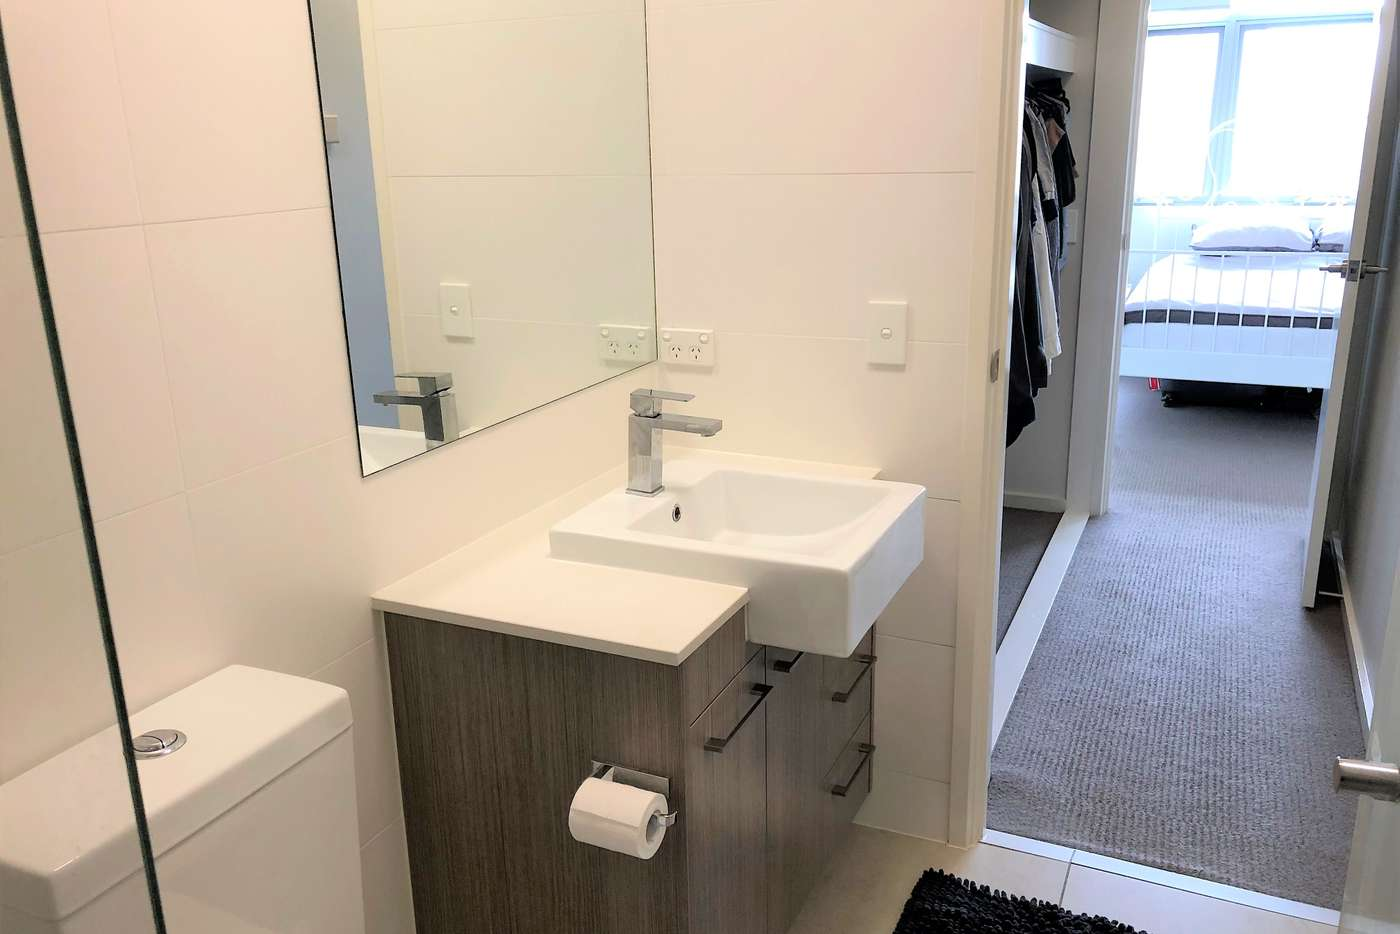 Fifth view of Homely apartment listing, 503/37 Connor Street, Kangaroo Point QLD 4169